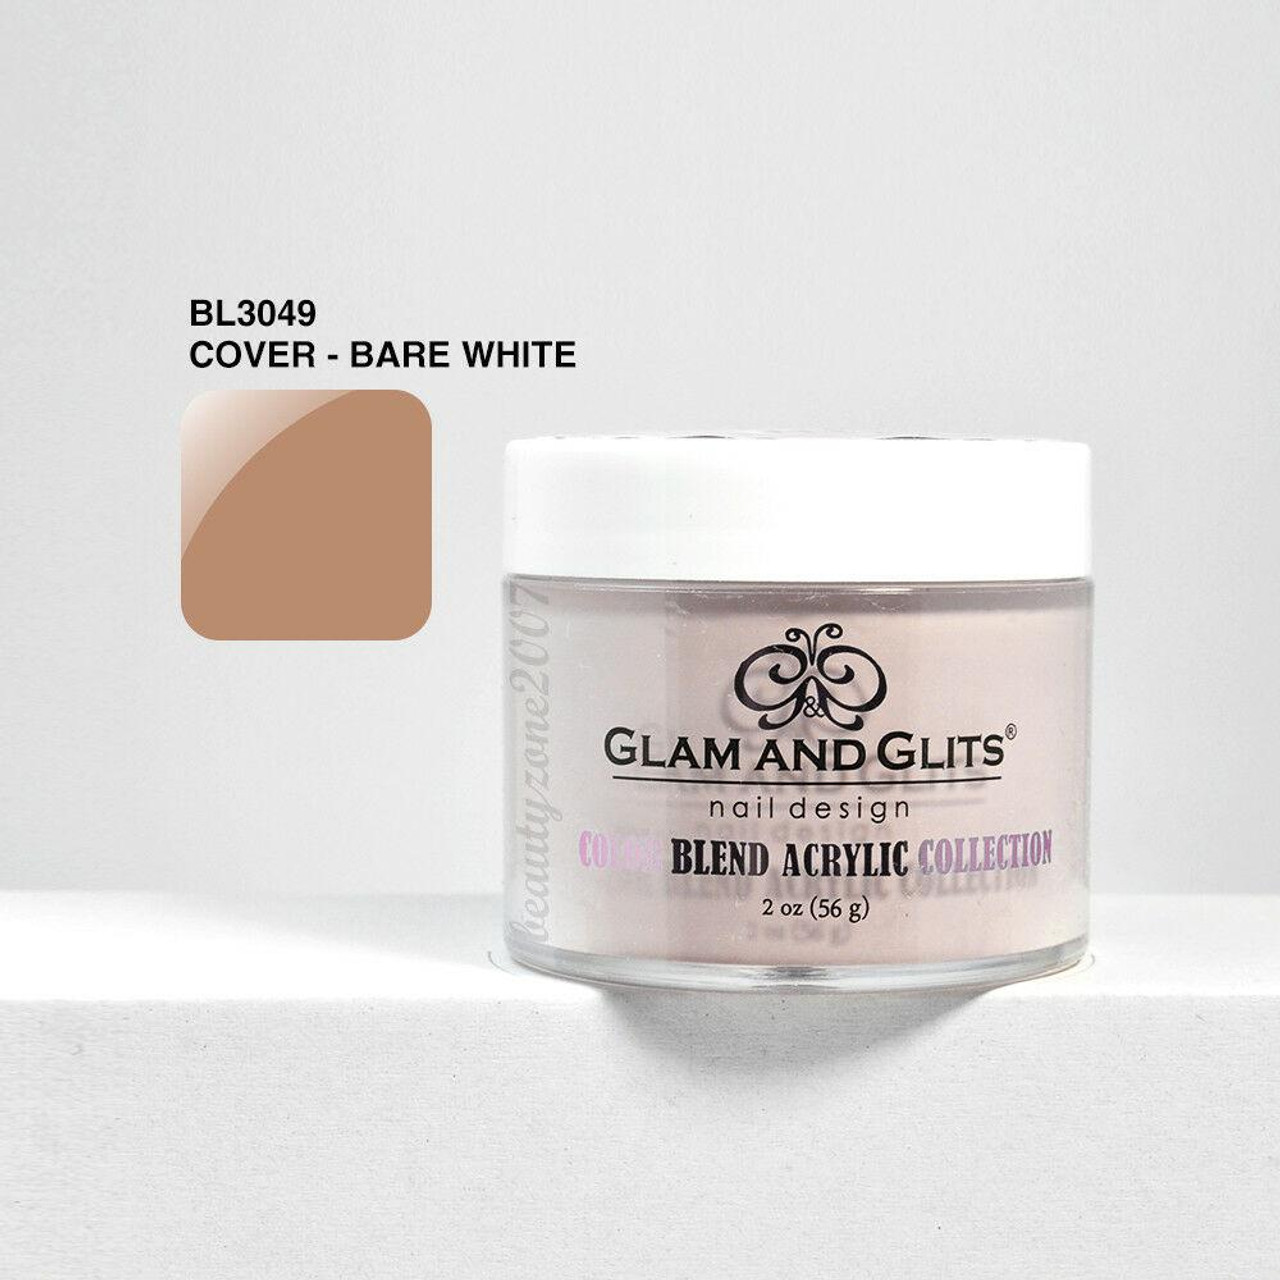 Glam and Glits Color Blend Nail Powder BL3049 - Bare White 2oz